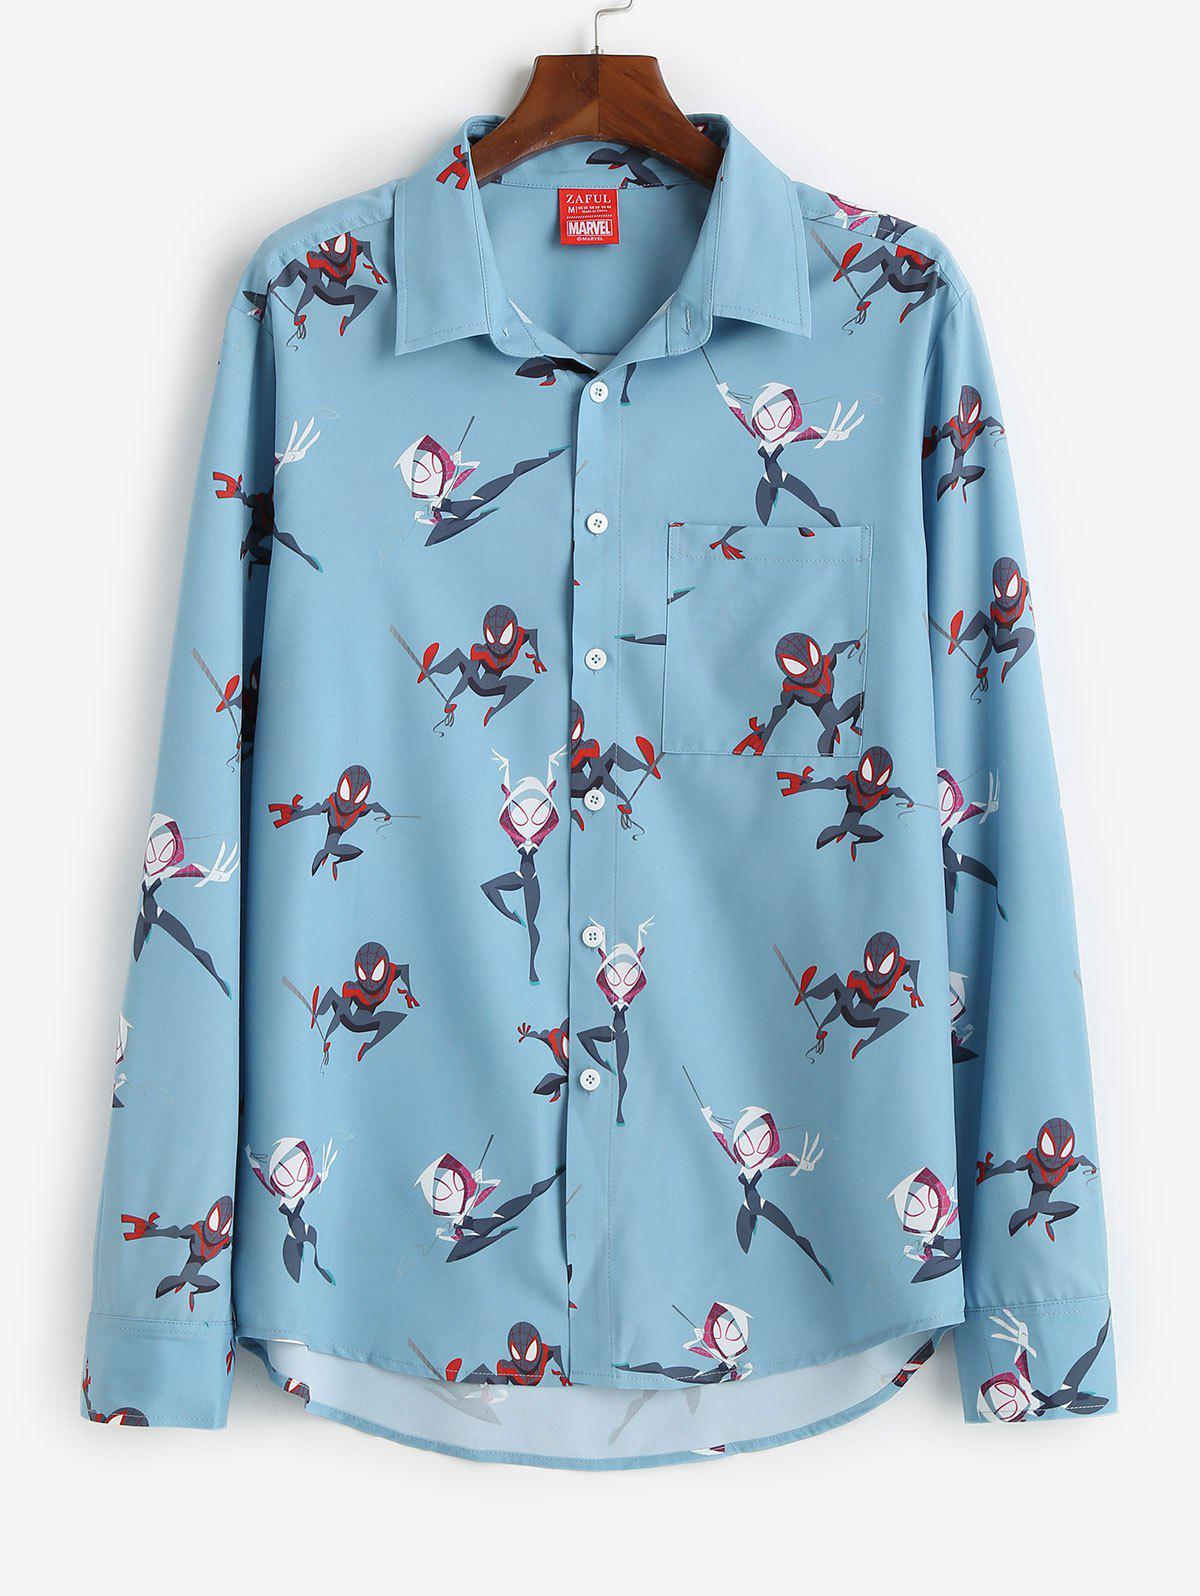 Outfit Marvel Spider-Man Spider-Girl Print Button Up Shirt